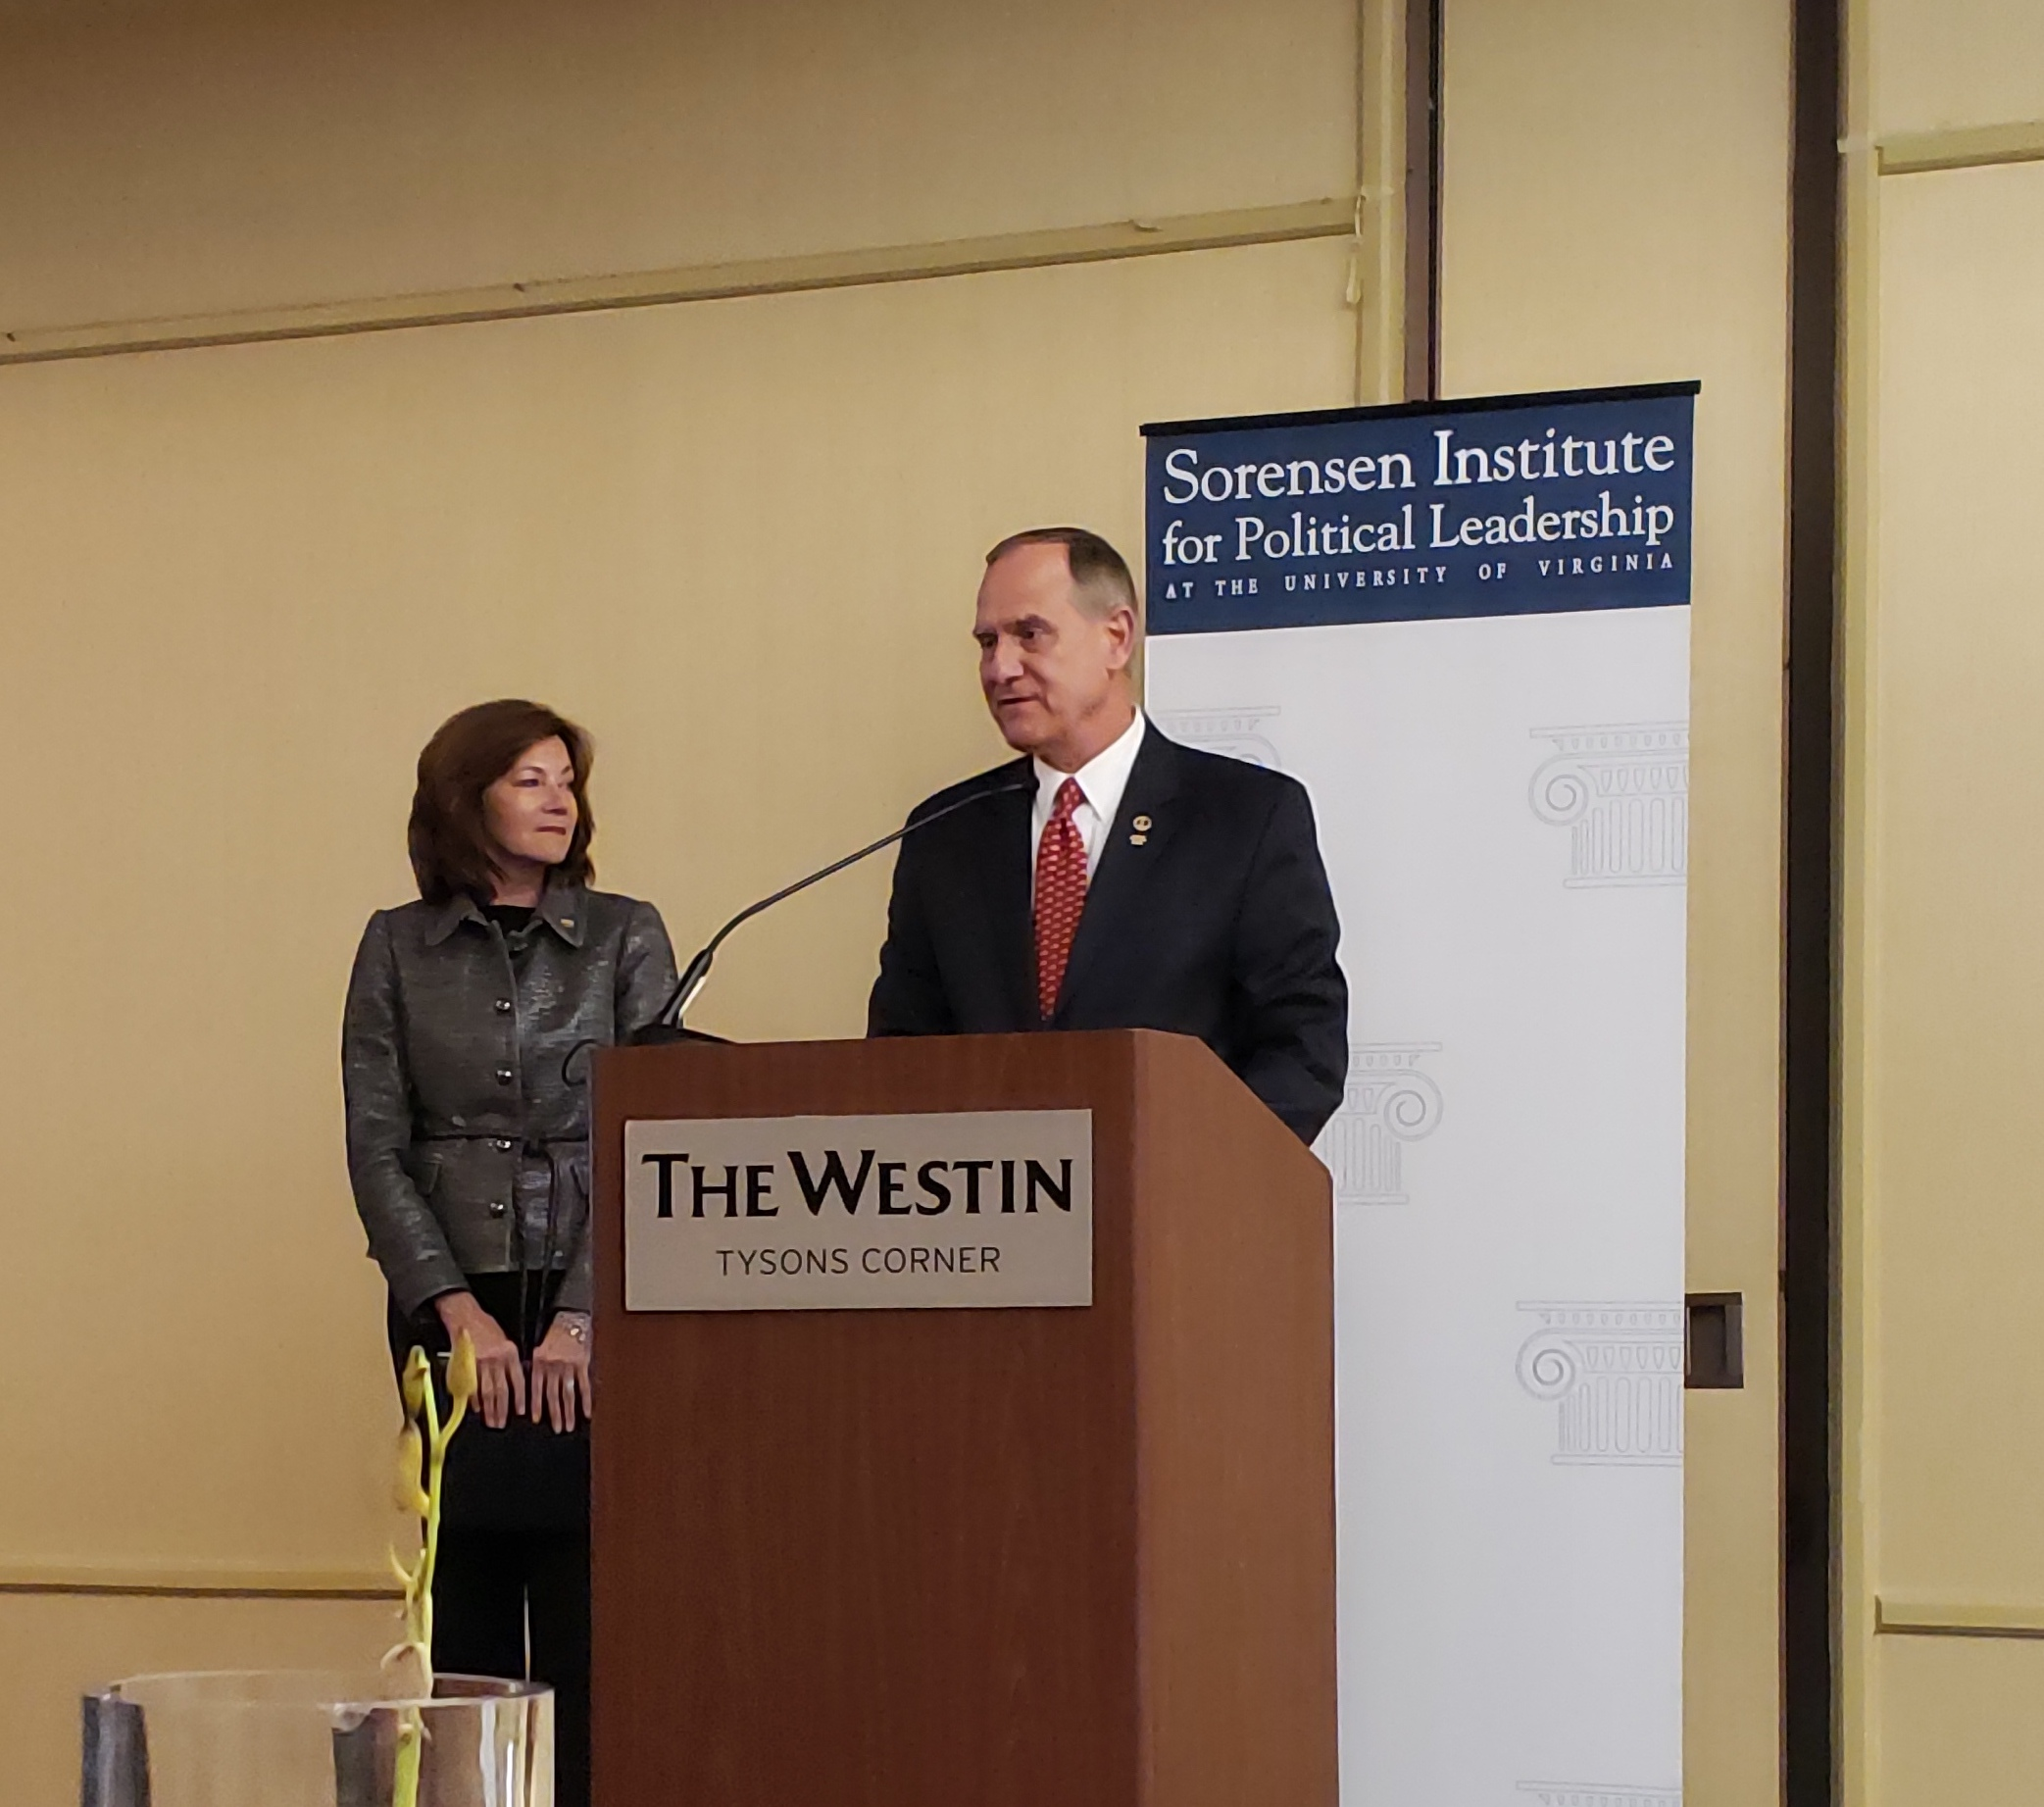 Event co-hosts Margi Vanderhye (R) and Rich Anderson (L)